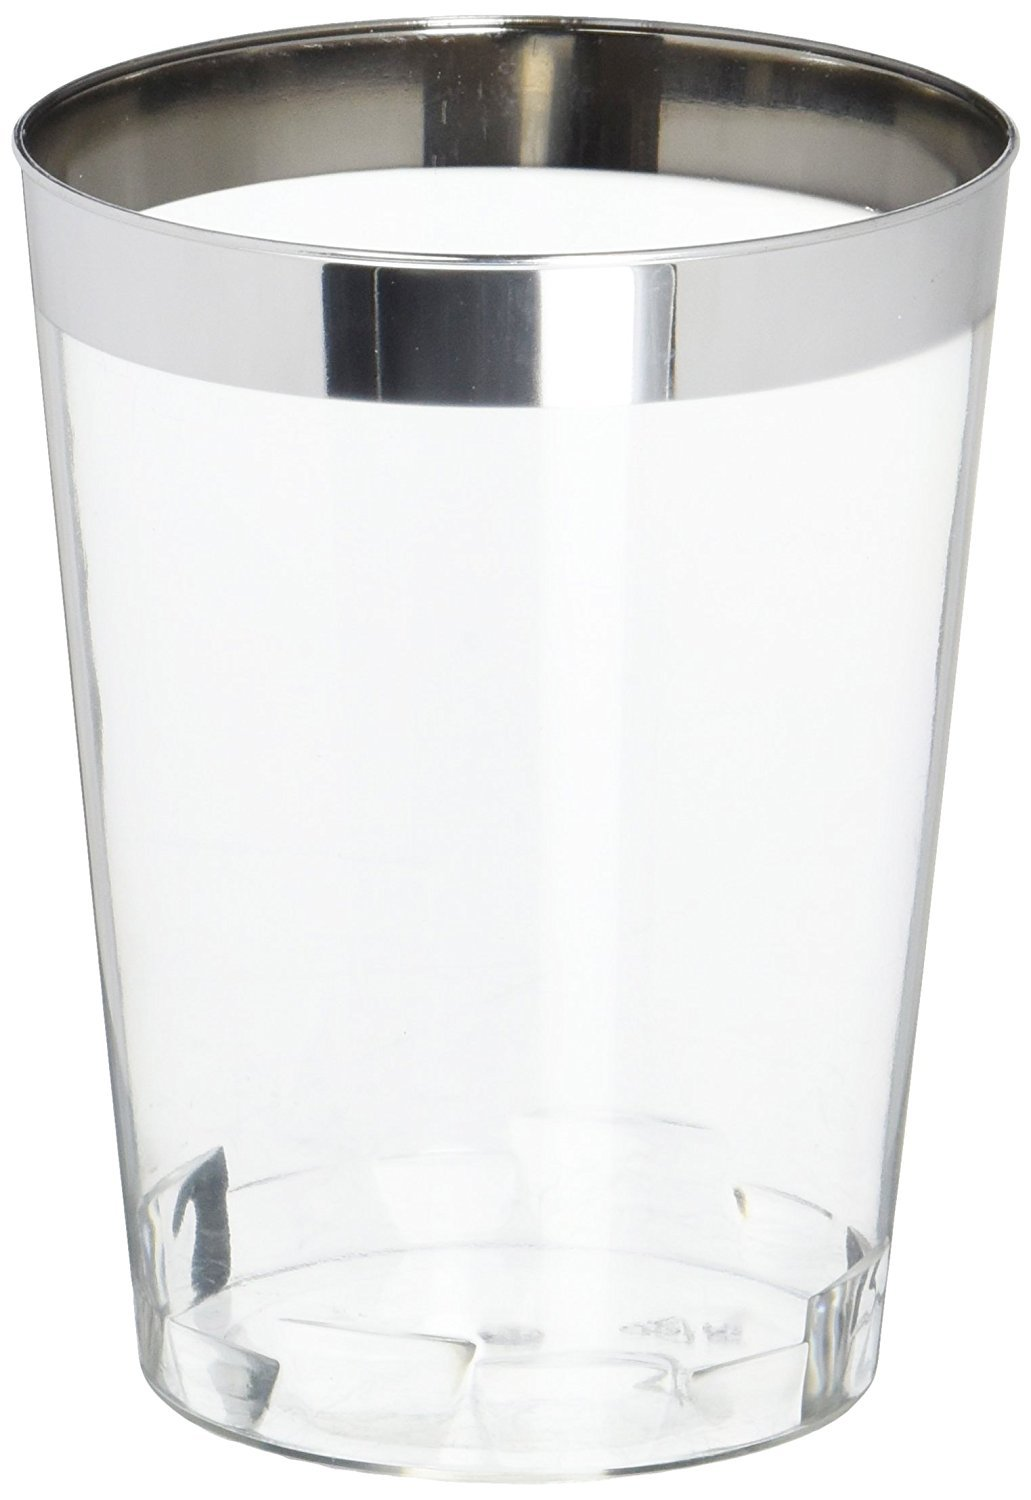 OCCASIONS Disposable Plastic Stemware/ Cups (400, 10 oz Silver Rimmed Tumblers) by OCCASIONS FINEST PLASTIC TABLEWARE